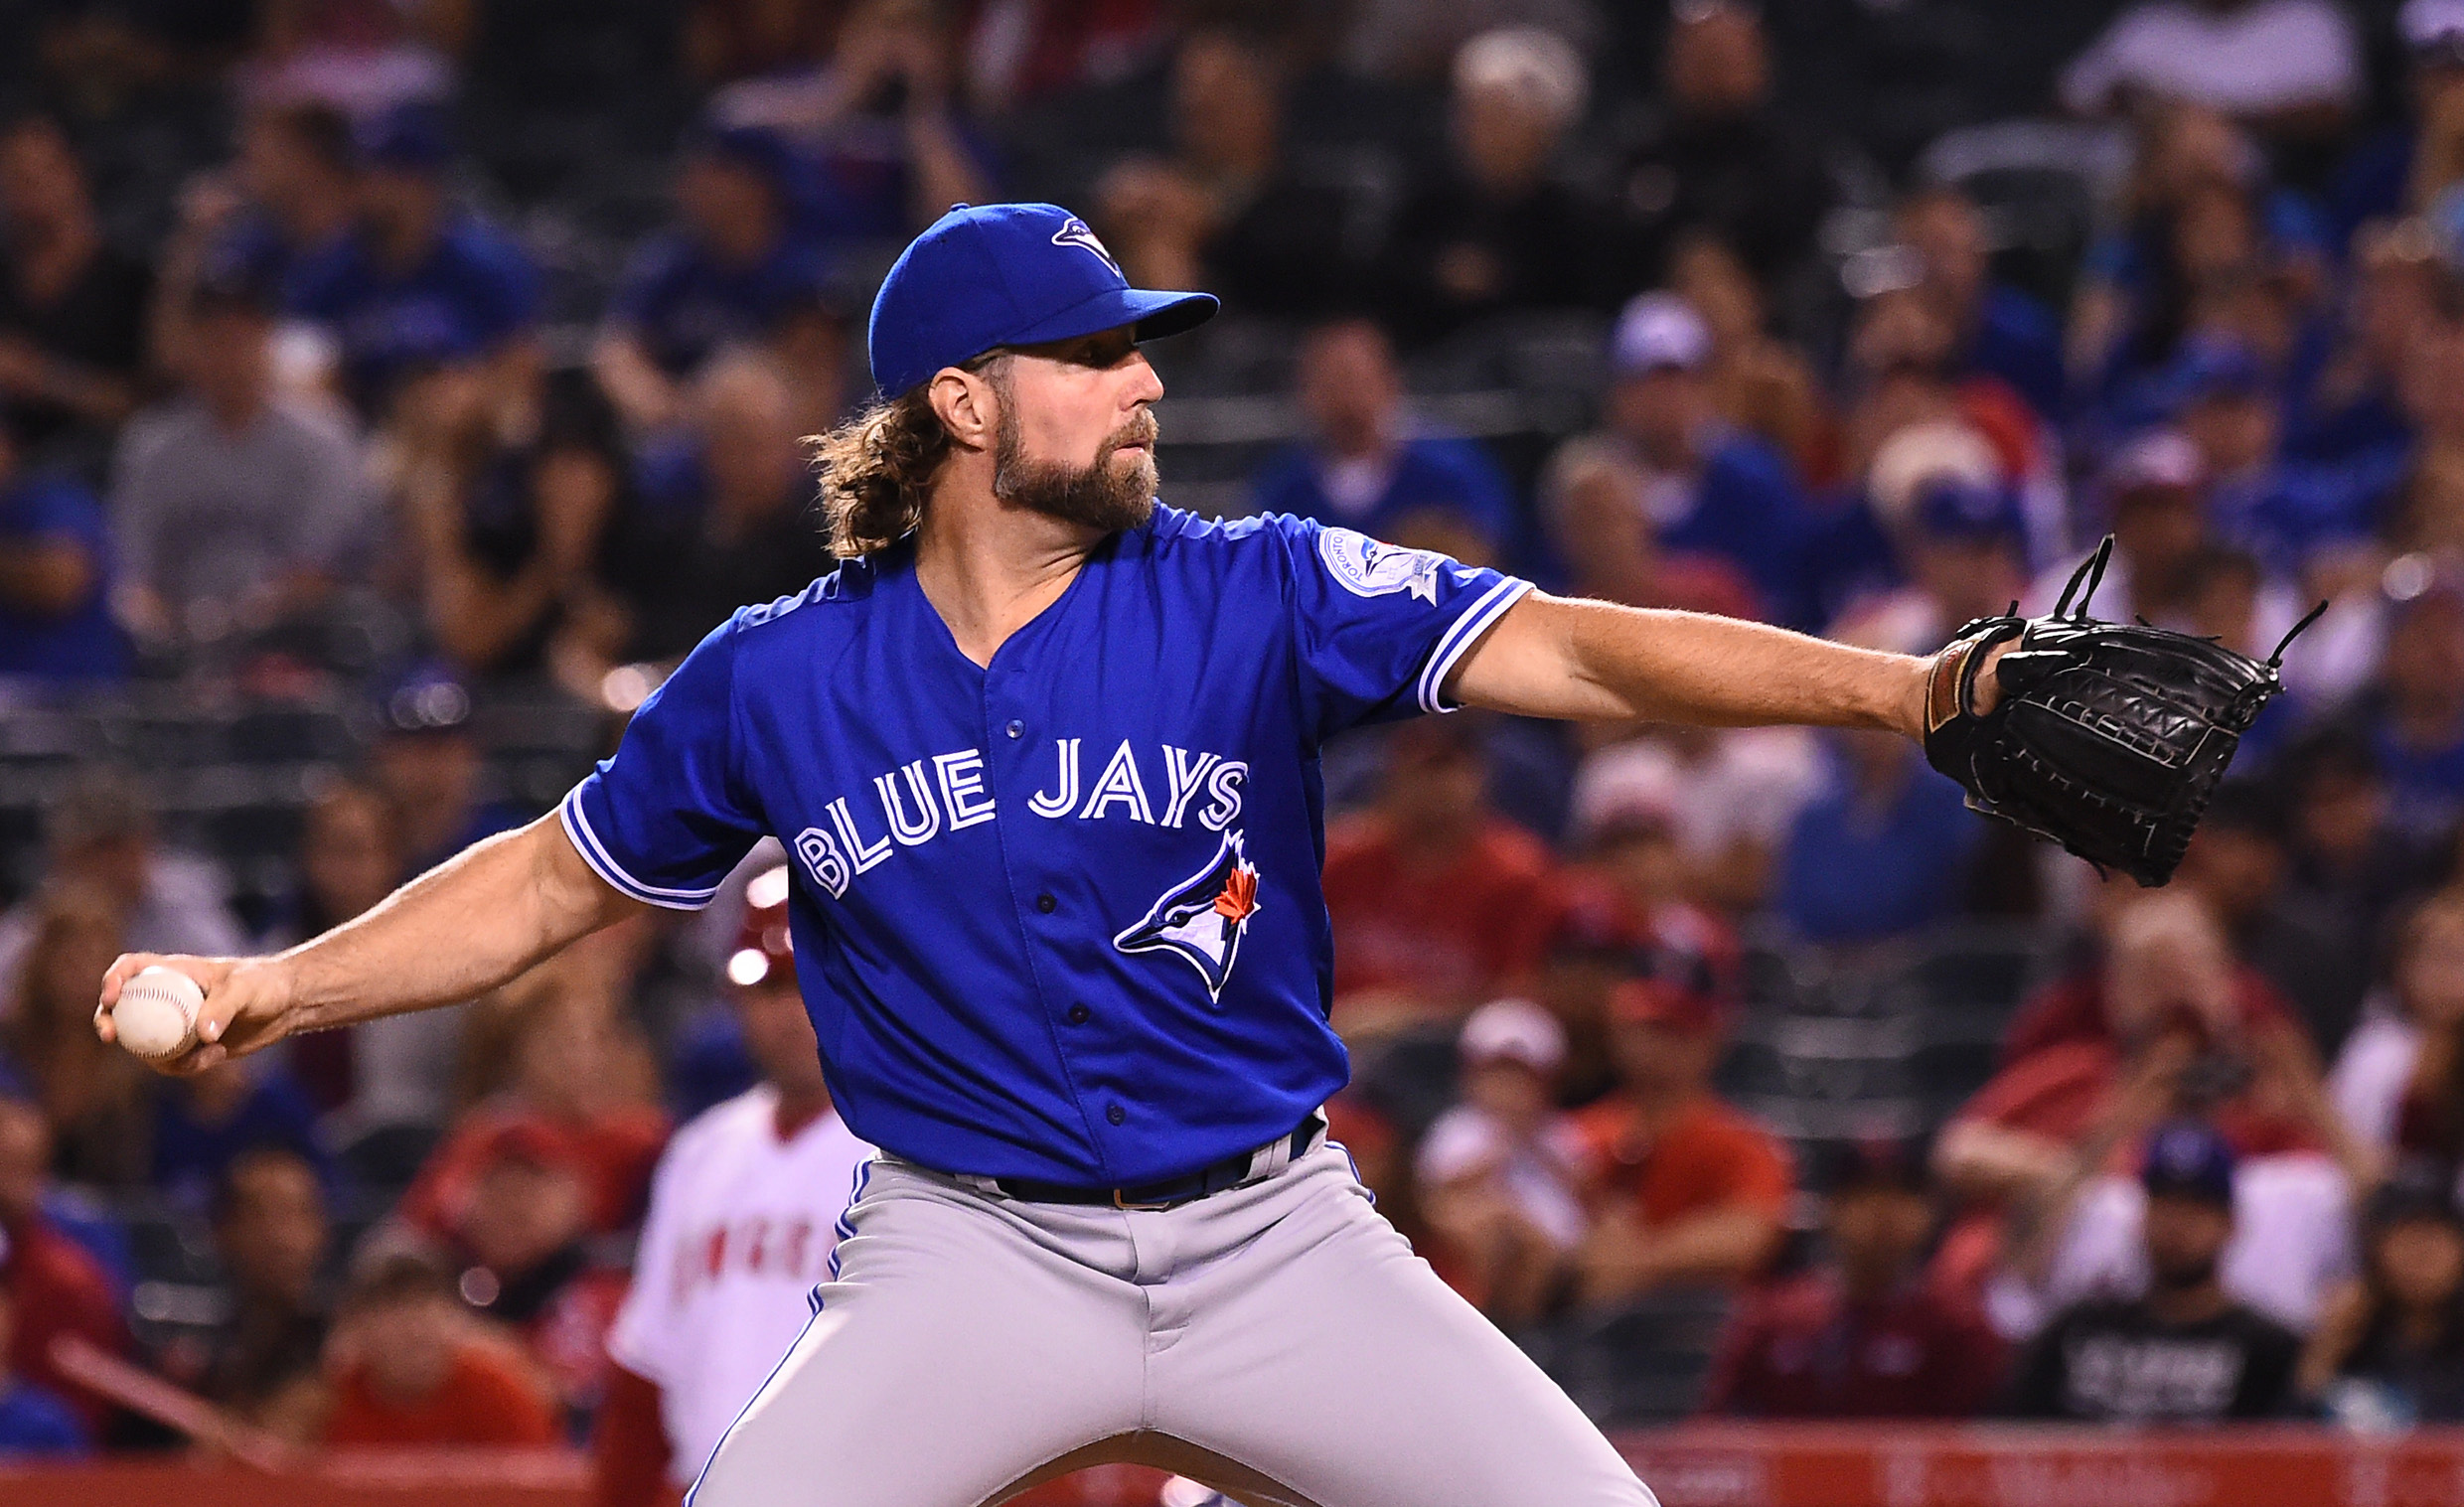 MLB: Toronto Blue Jays at Los Angeles Angels